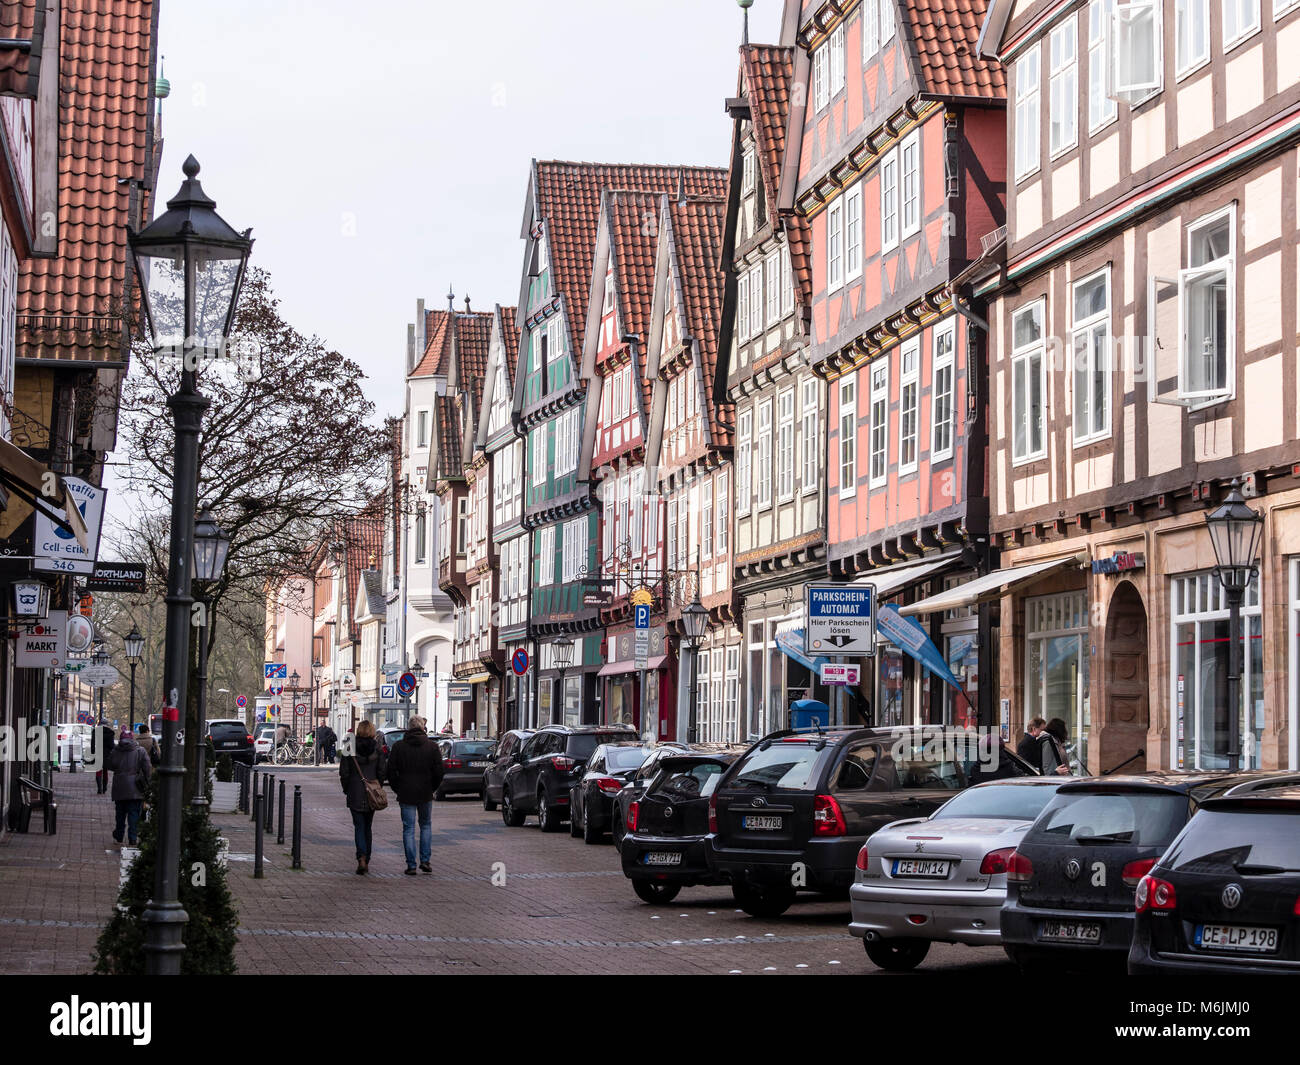 Pottery shop, historical center of Celle, half-timbered house in street 'Schuhstrasse', Celle, Lower Saxony, - Stock Image